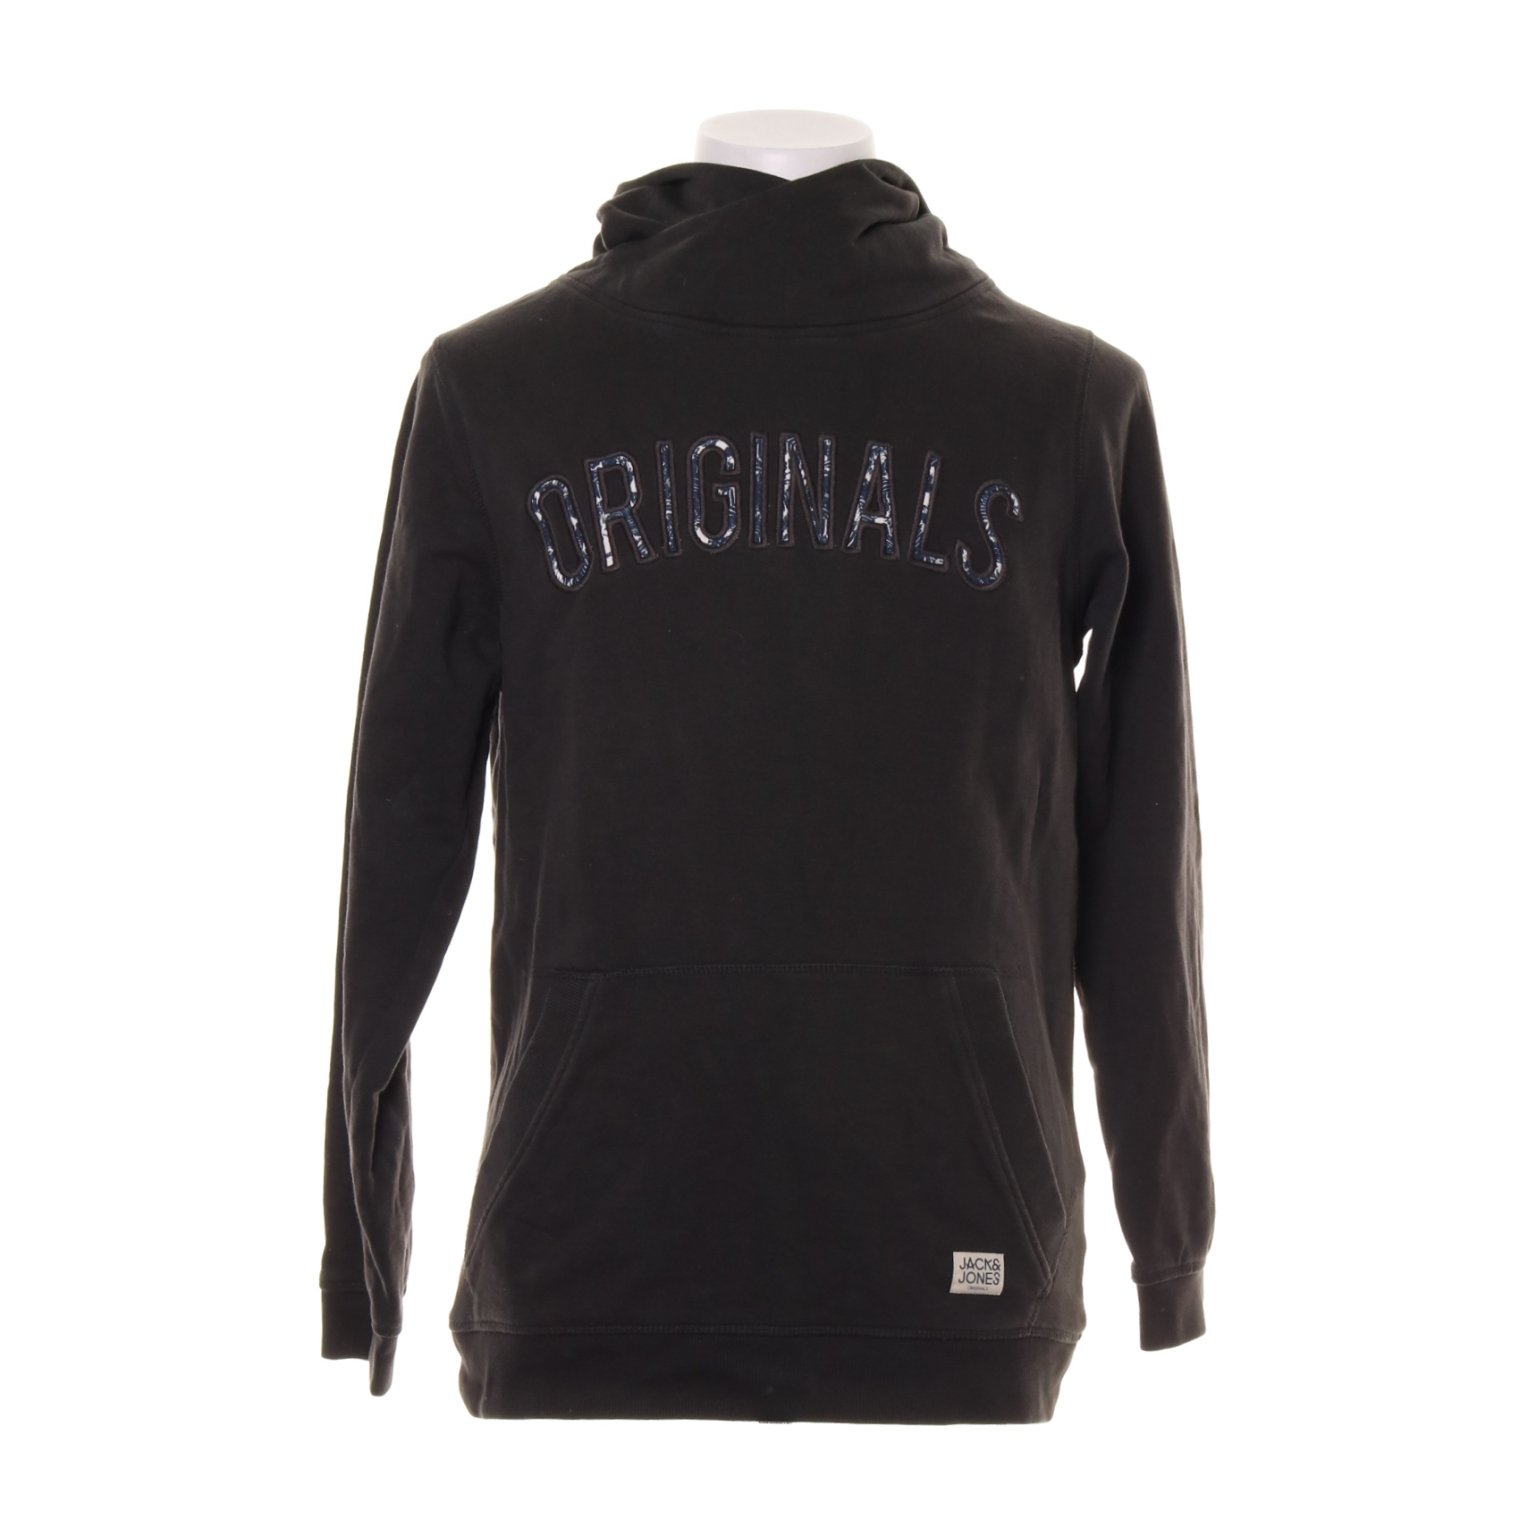 Originals by Jack & Jones, Huvtröja, Strl: S, 12076780, Svart, Bomull